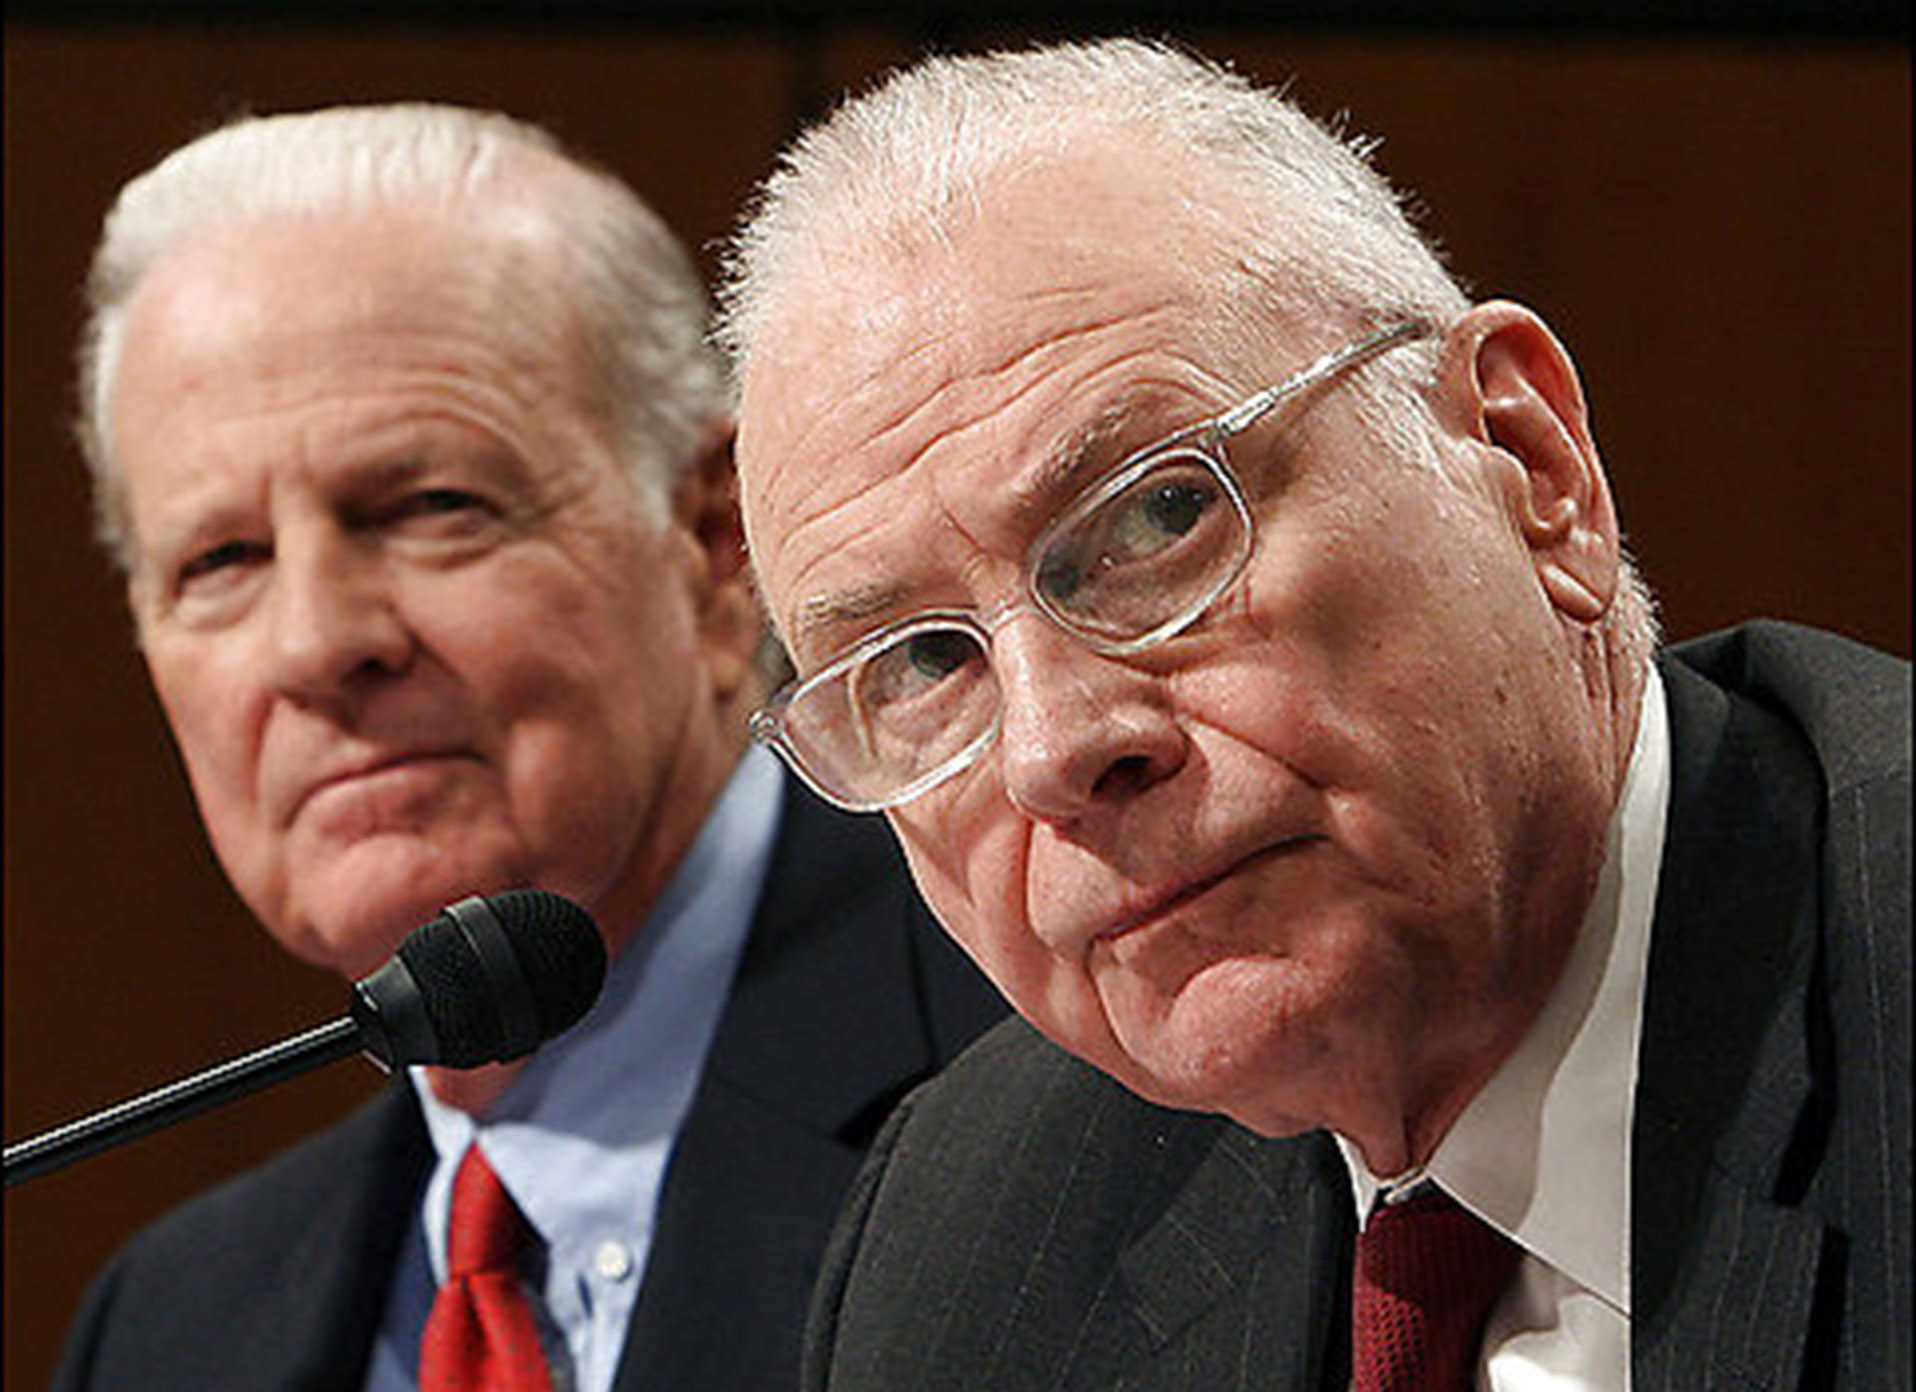 Iraq Study Group co-chairs James A. Baker III, left, and Lee Hamilton, testify during a hearing of the Senate Armed Services Committee, Thursday, December 7, 2006, in Washington, D.C. Baker said President George W. Bush gave him permission to approach the Iranian government about its willingness to help strengthen Iraq amid sectarian violence. Photographer: Chris Kleponis/Bloomberg News